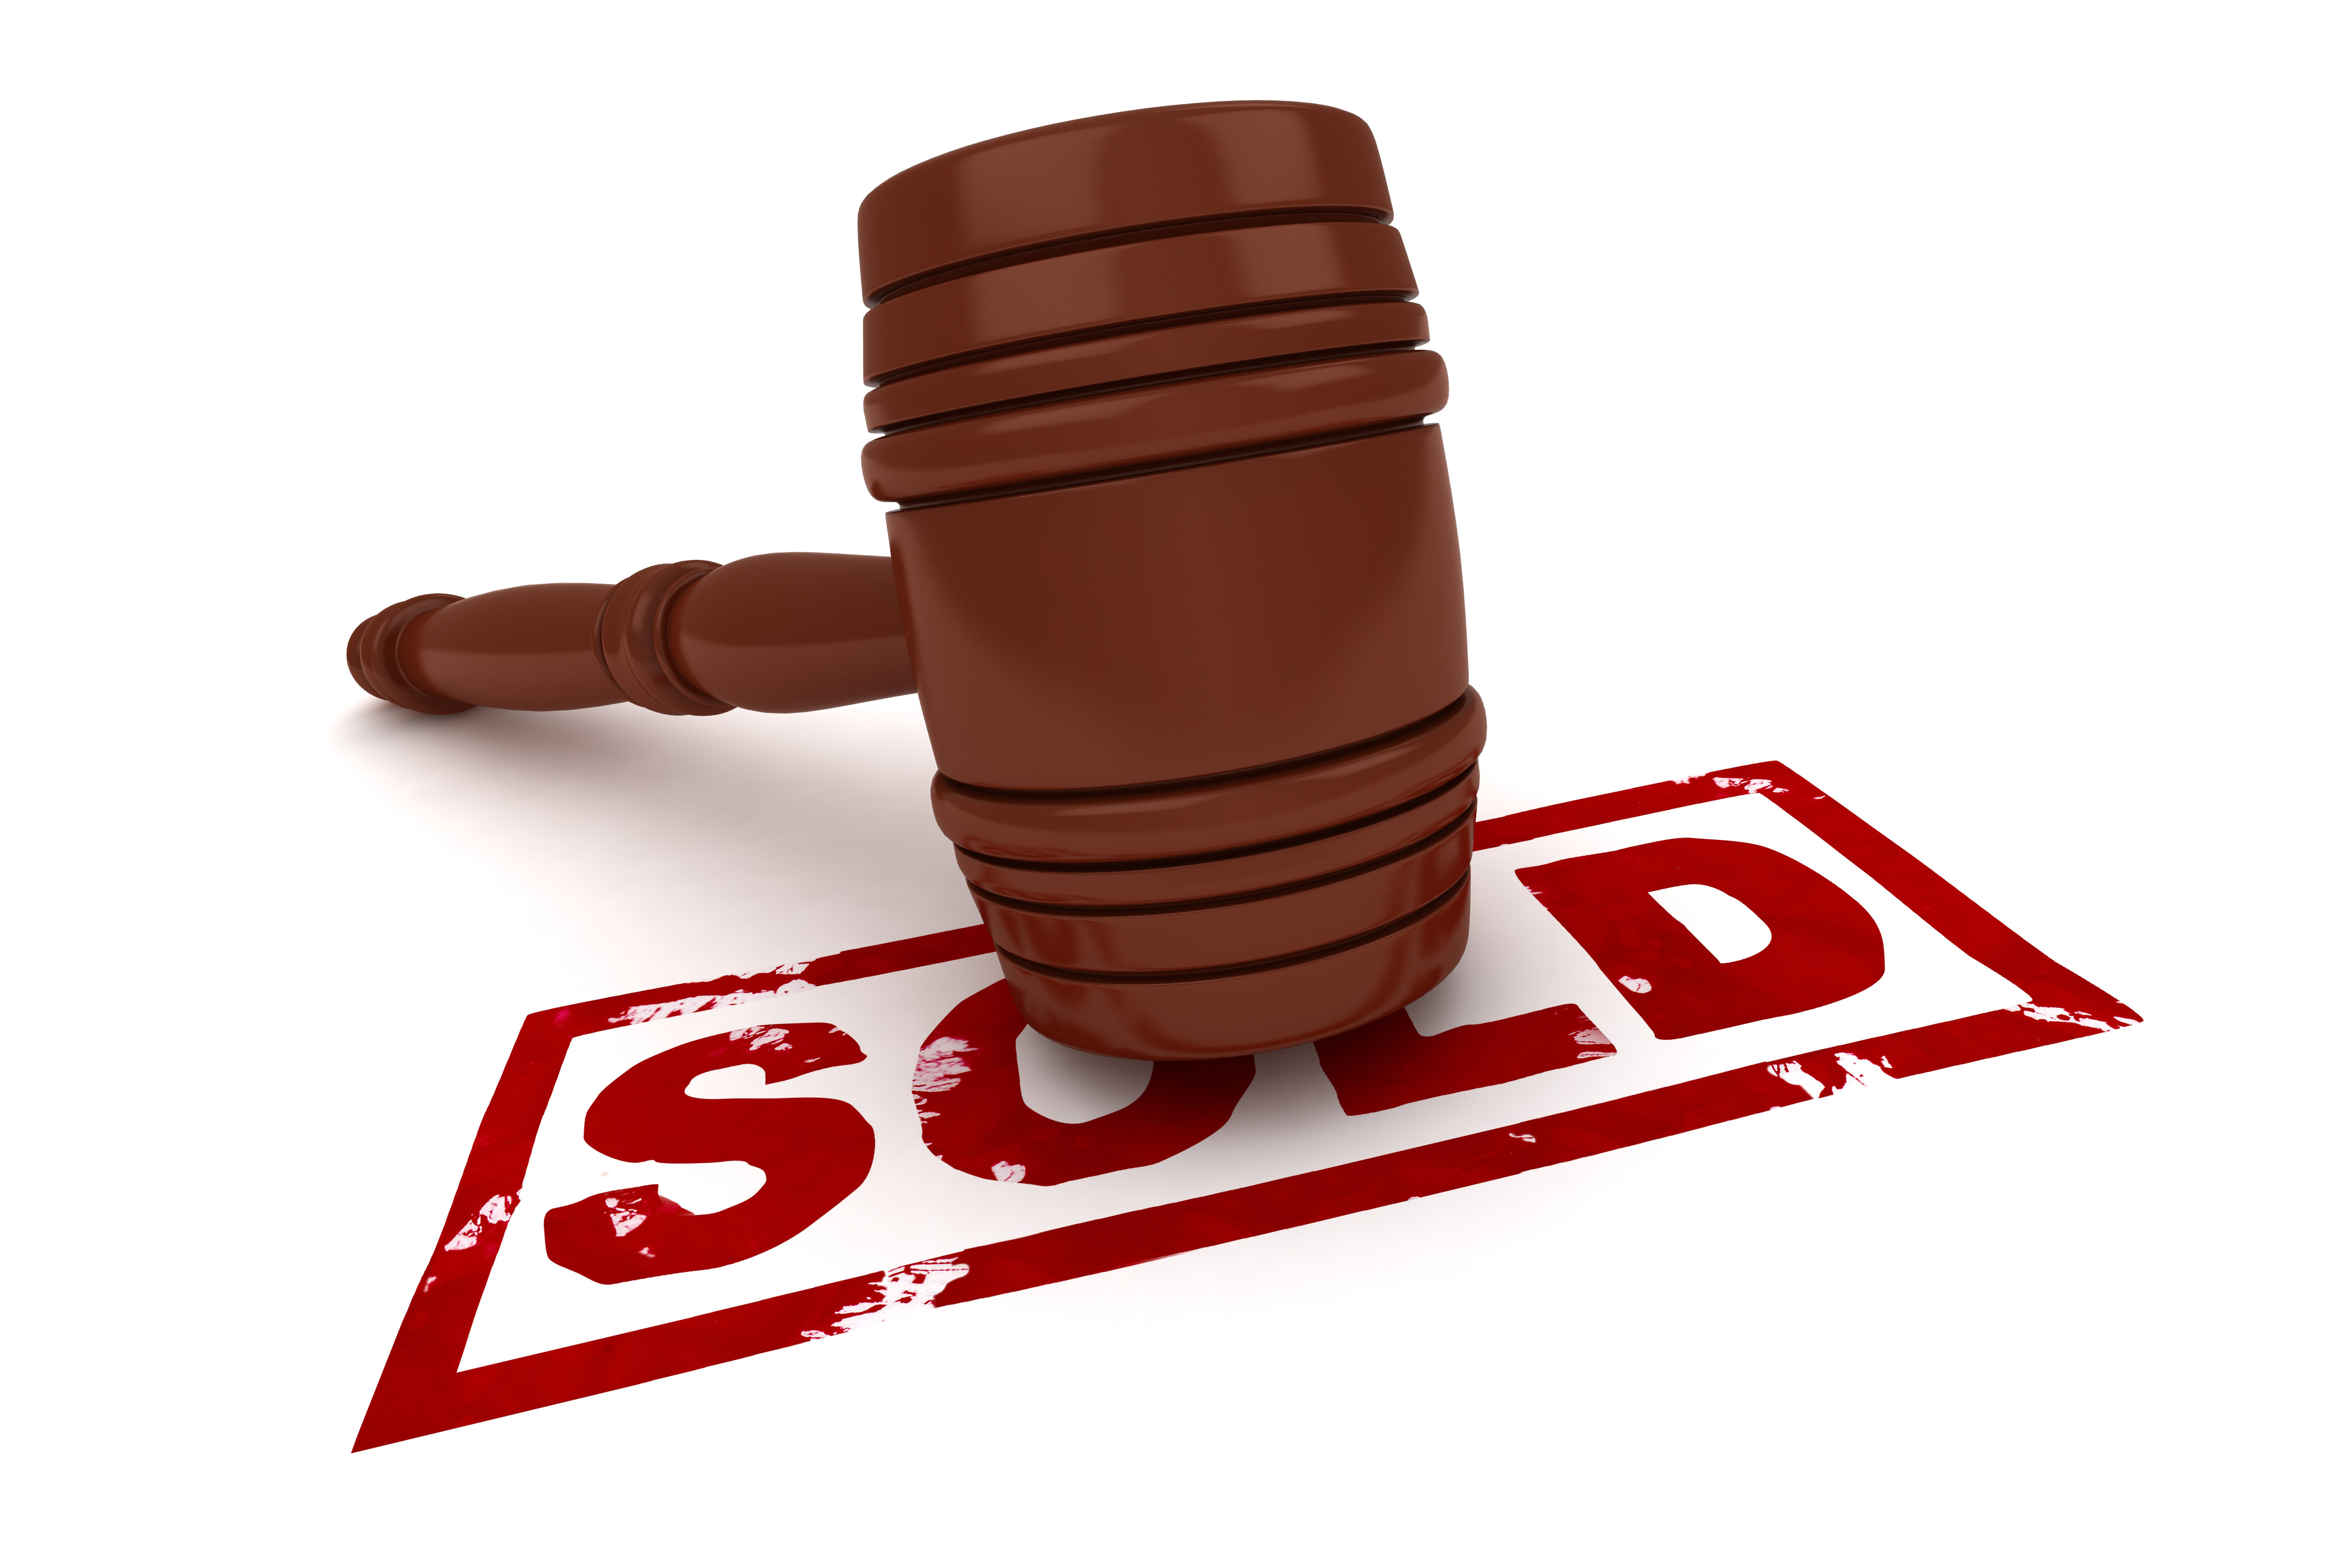 Auction clipart securitization. New panda free images